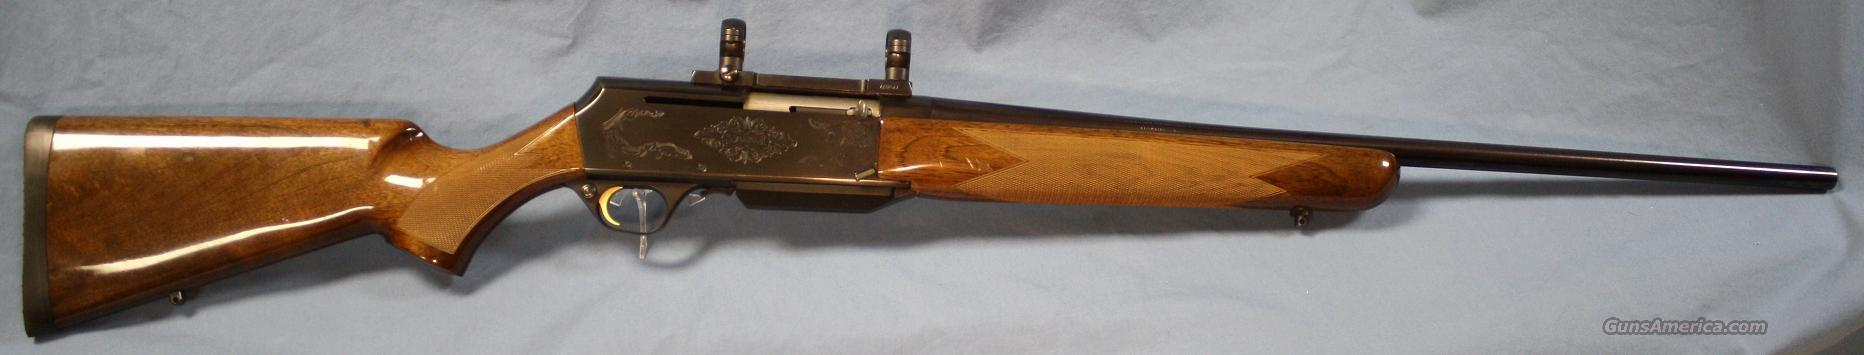 Browning BAR II Safari Semi-Auto Rifle 7mm Rem Magnum  Guns > Rifles > Browning Rifles > Semi Auto > Hunting